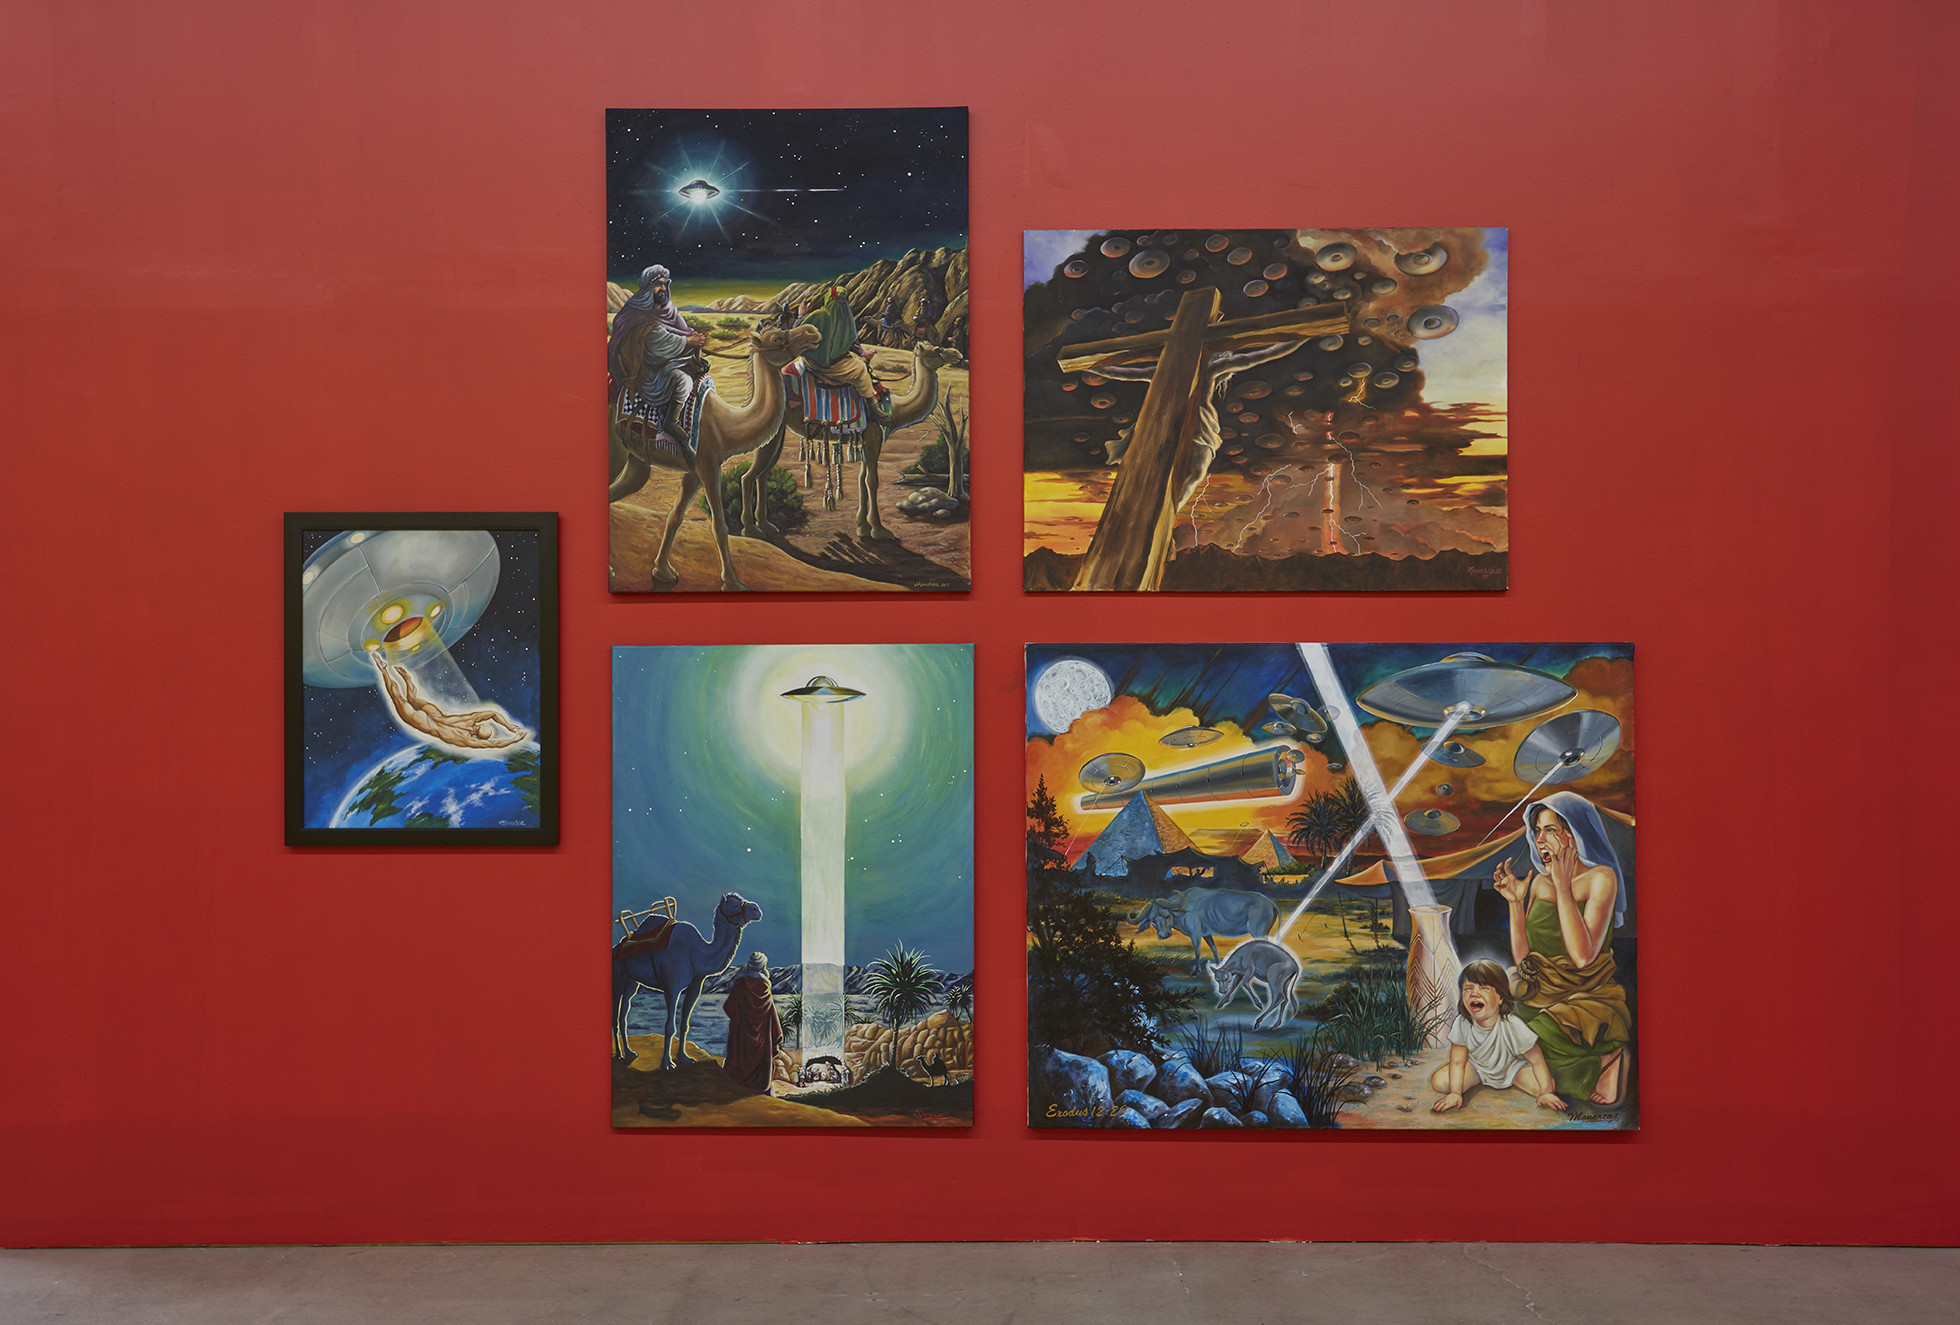 An installation of paintings by Monarca Lynn Merrifield, who claims to be a UFO contactee.